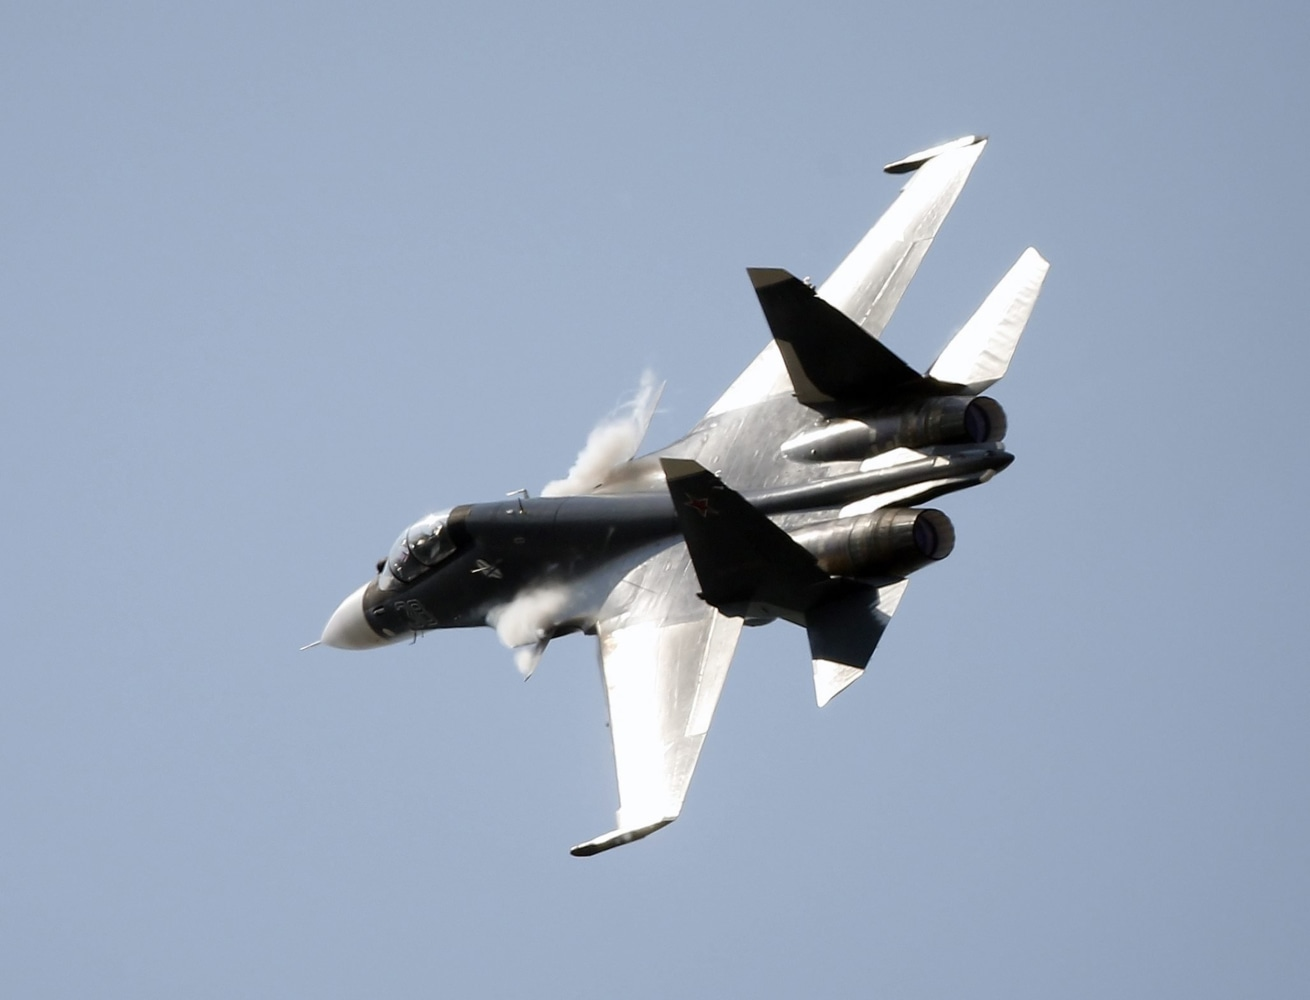 Russian Jet Buzzes US Navy Spy Plane Over Black Sea